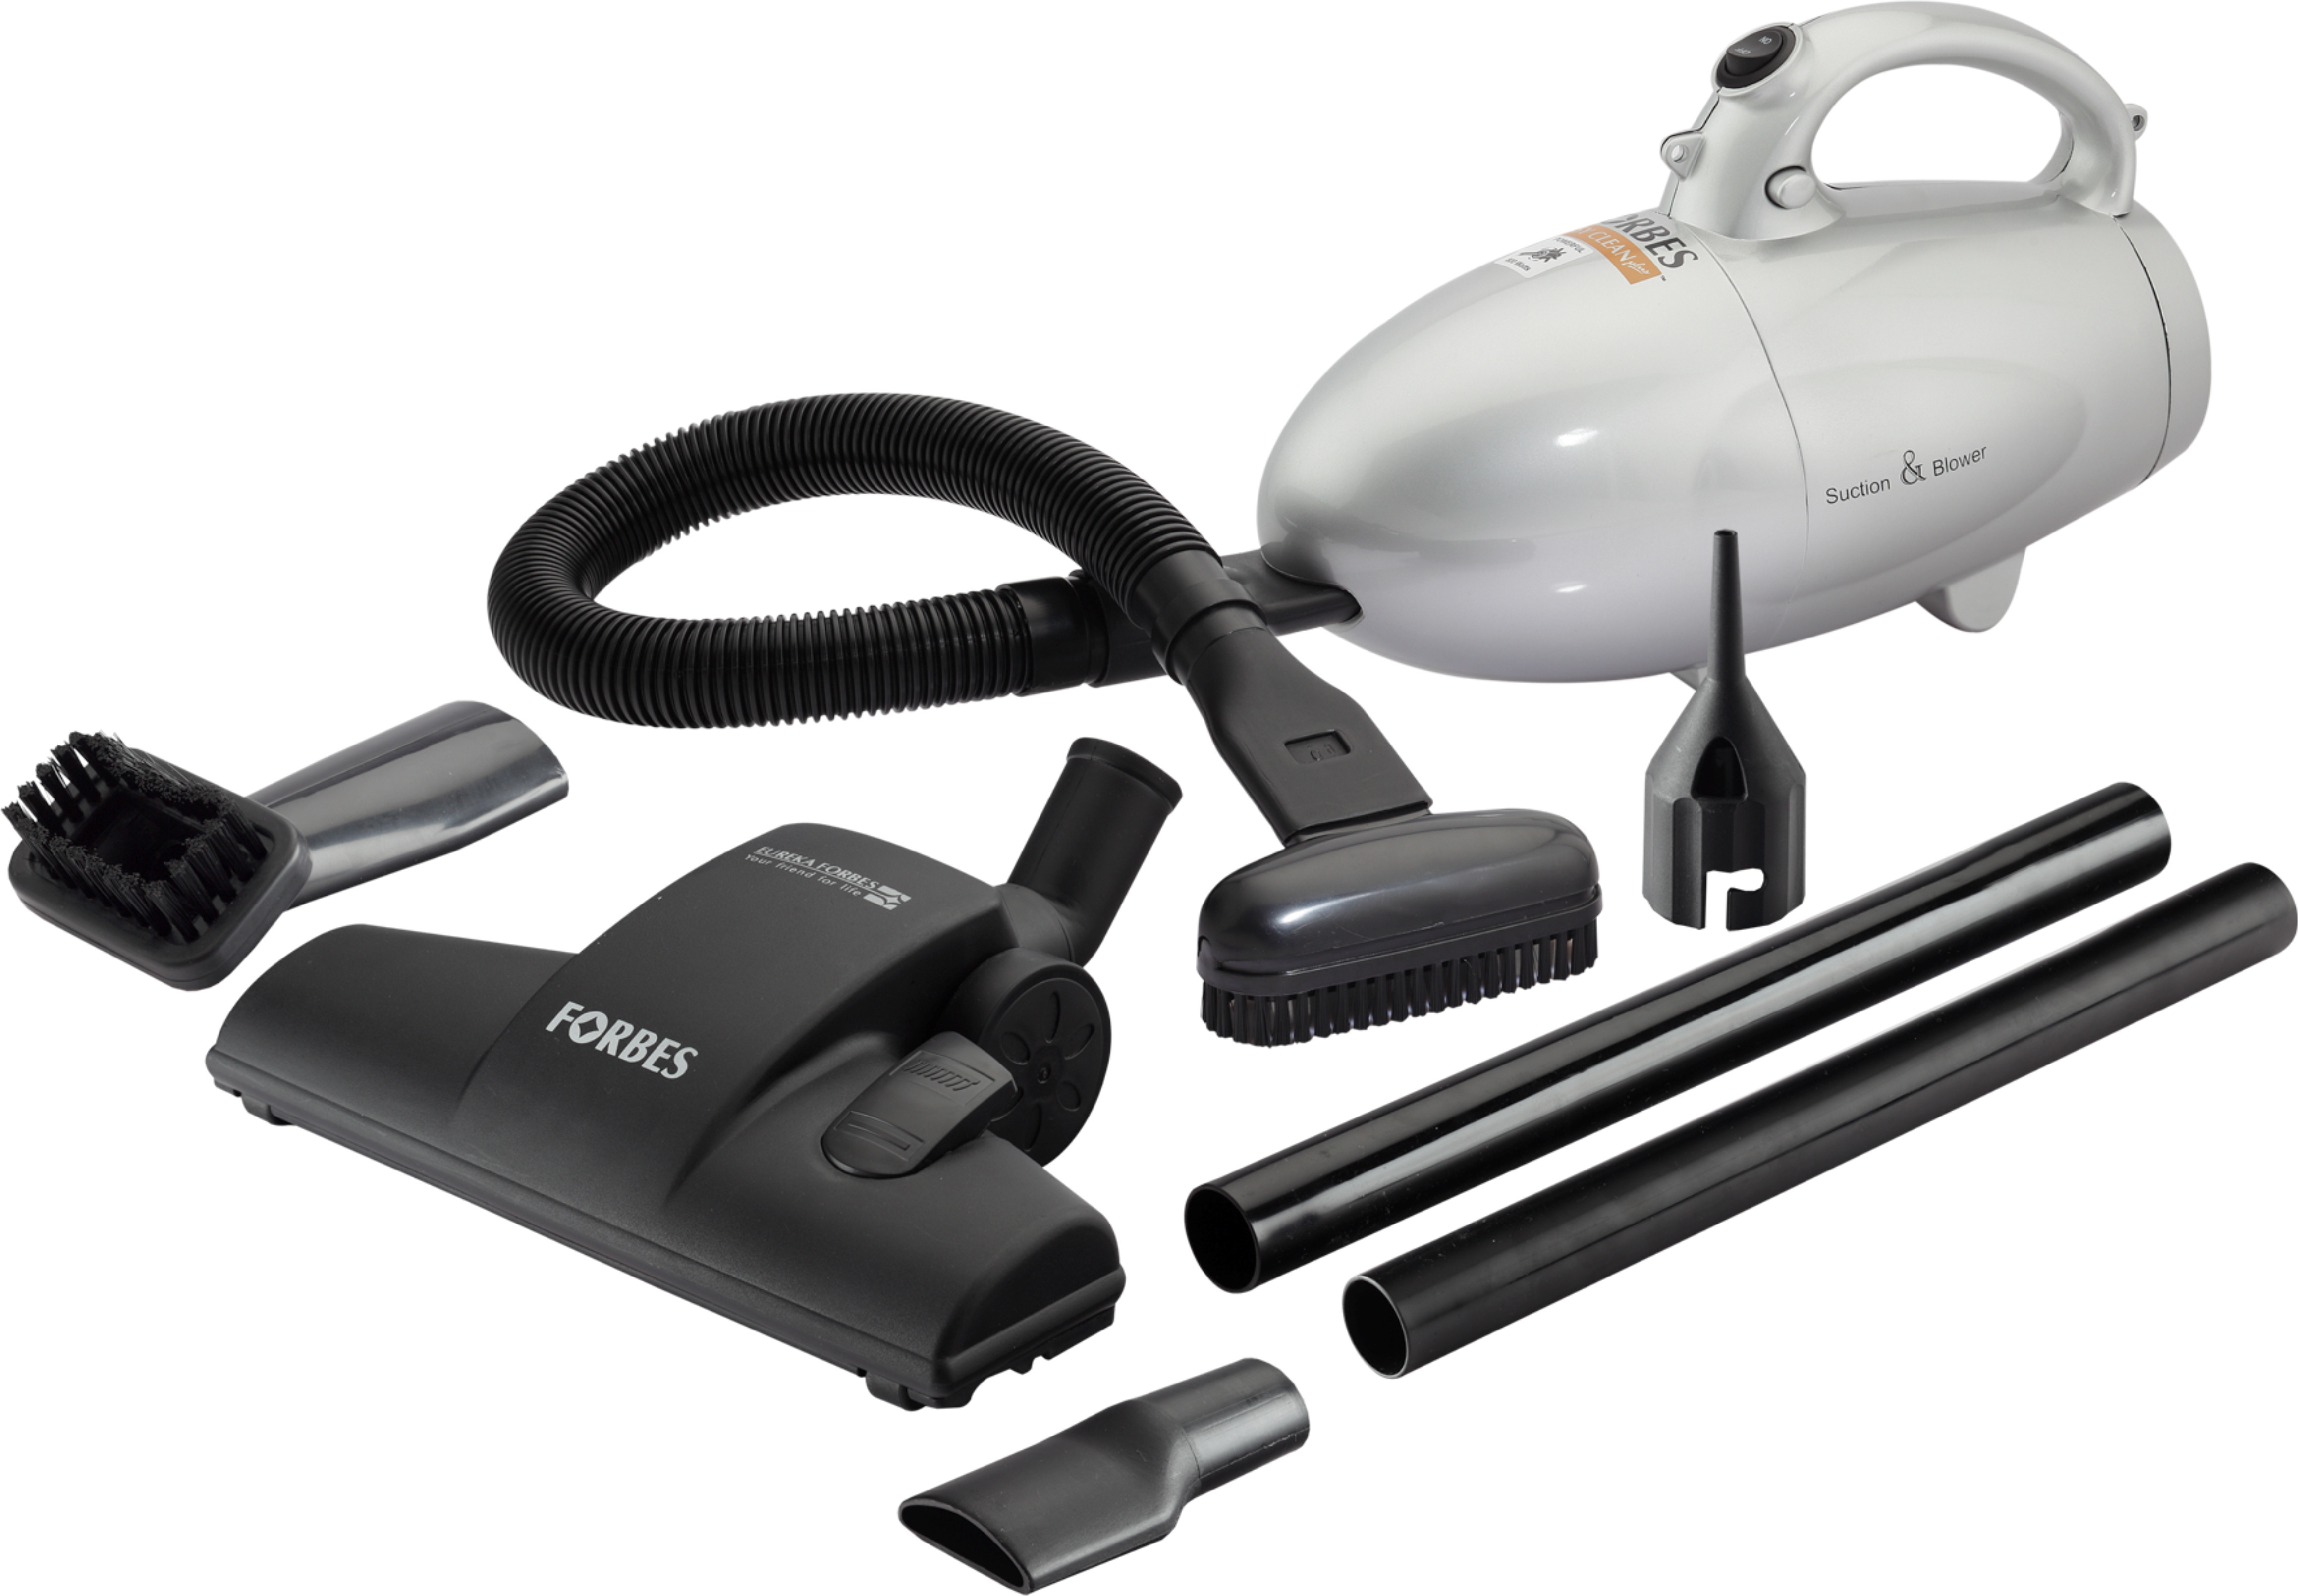 Eureka Forbes Easy Clean Plus Hand Held Vacuum Cleaner